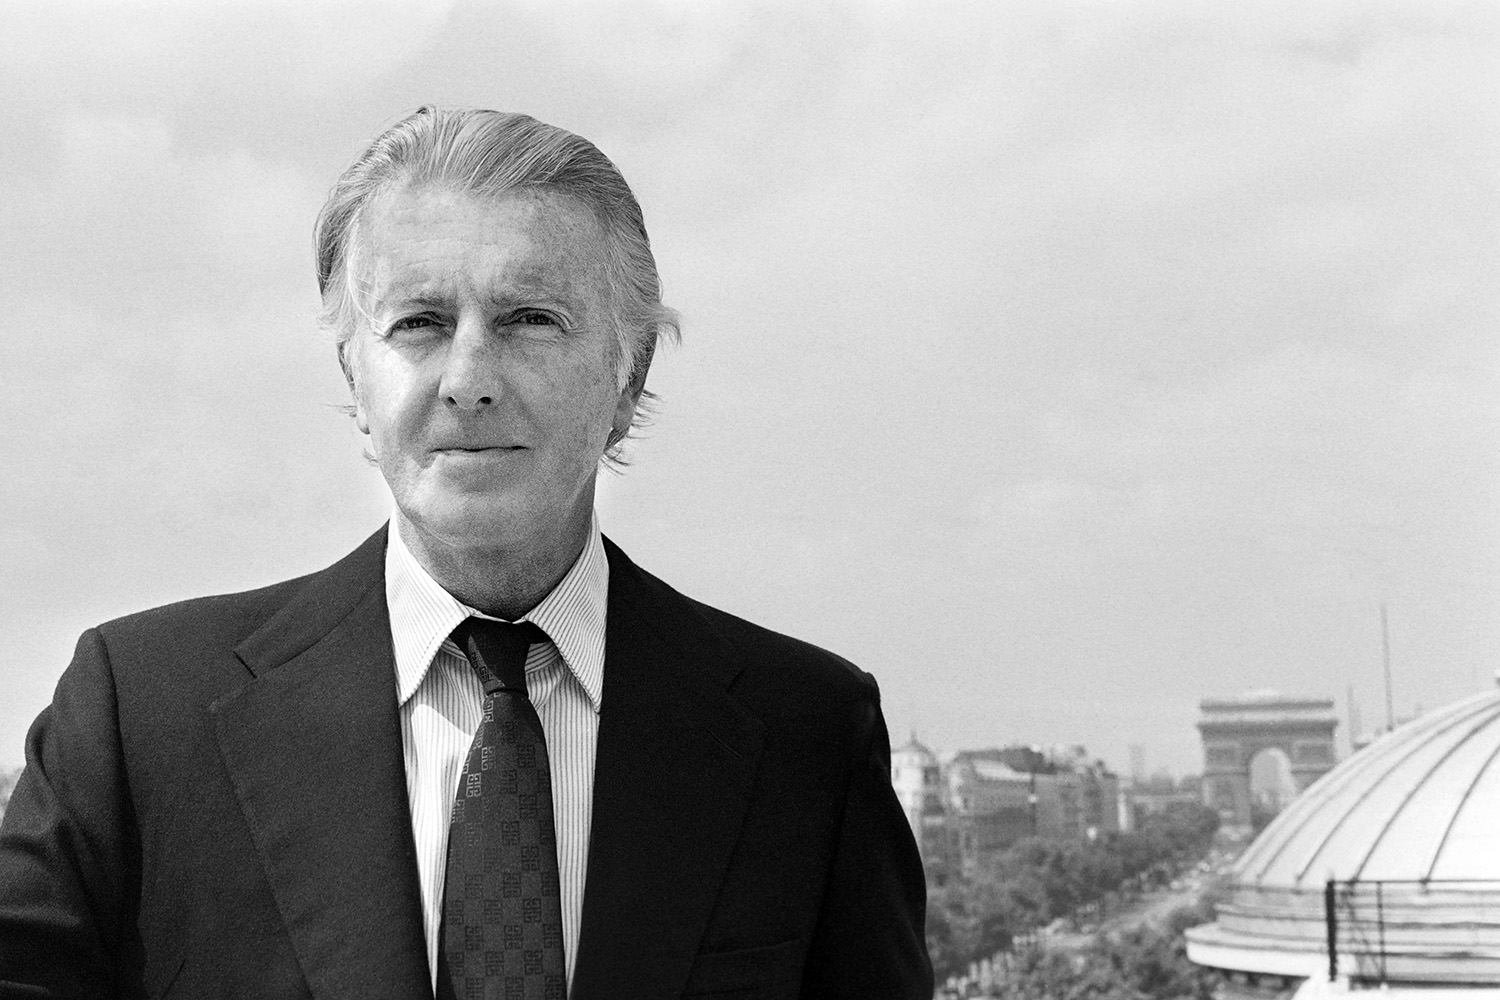 (FILES) In this file photo taken on July 27, 1978 French aristocrat and fashion designer Hubert de Givenchy poses for photographs in Paris.    French fashion designer Hubert de Givenchy died aged 91 it was announced on March 12, 2018.  / AFP PHOTO / PIERRE GUILLAUD